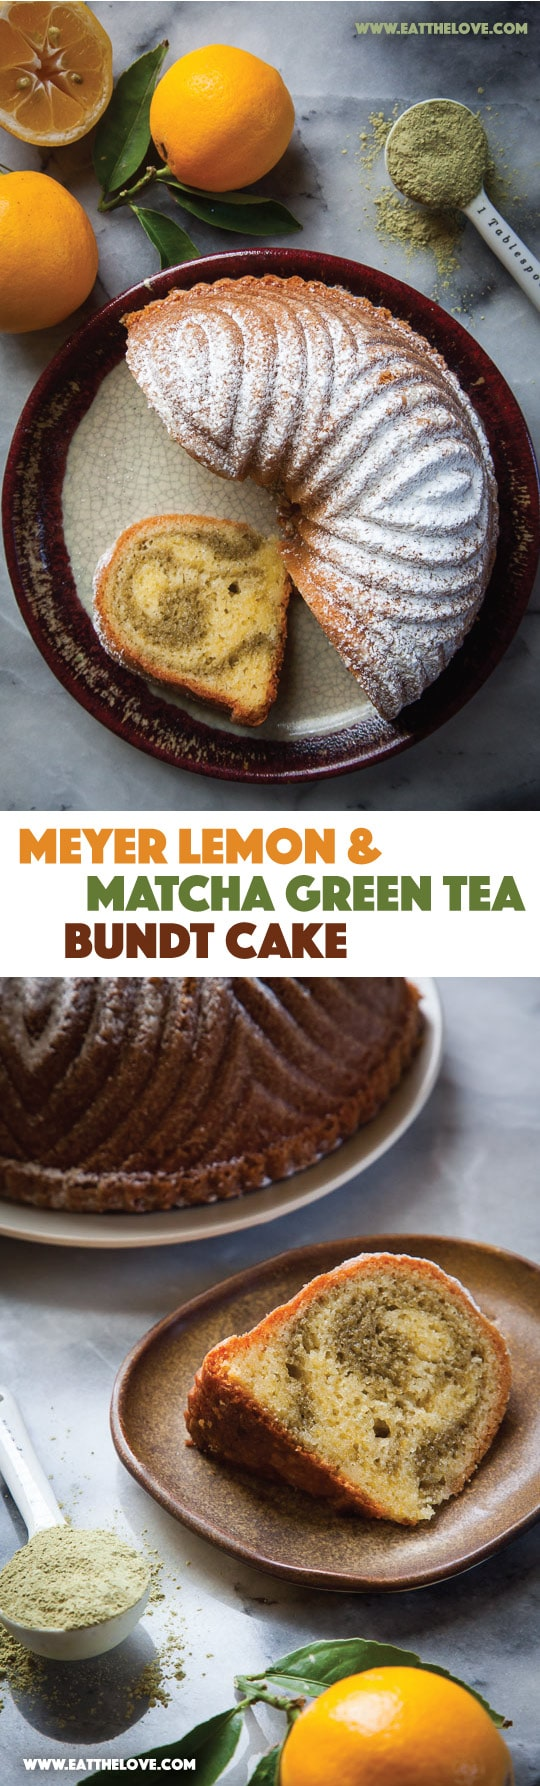 Meyer lemon and matcha green tea bundt cake. Photo and recipe by Irvin Lin of Eat the Love.